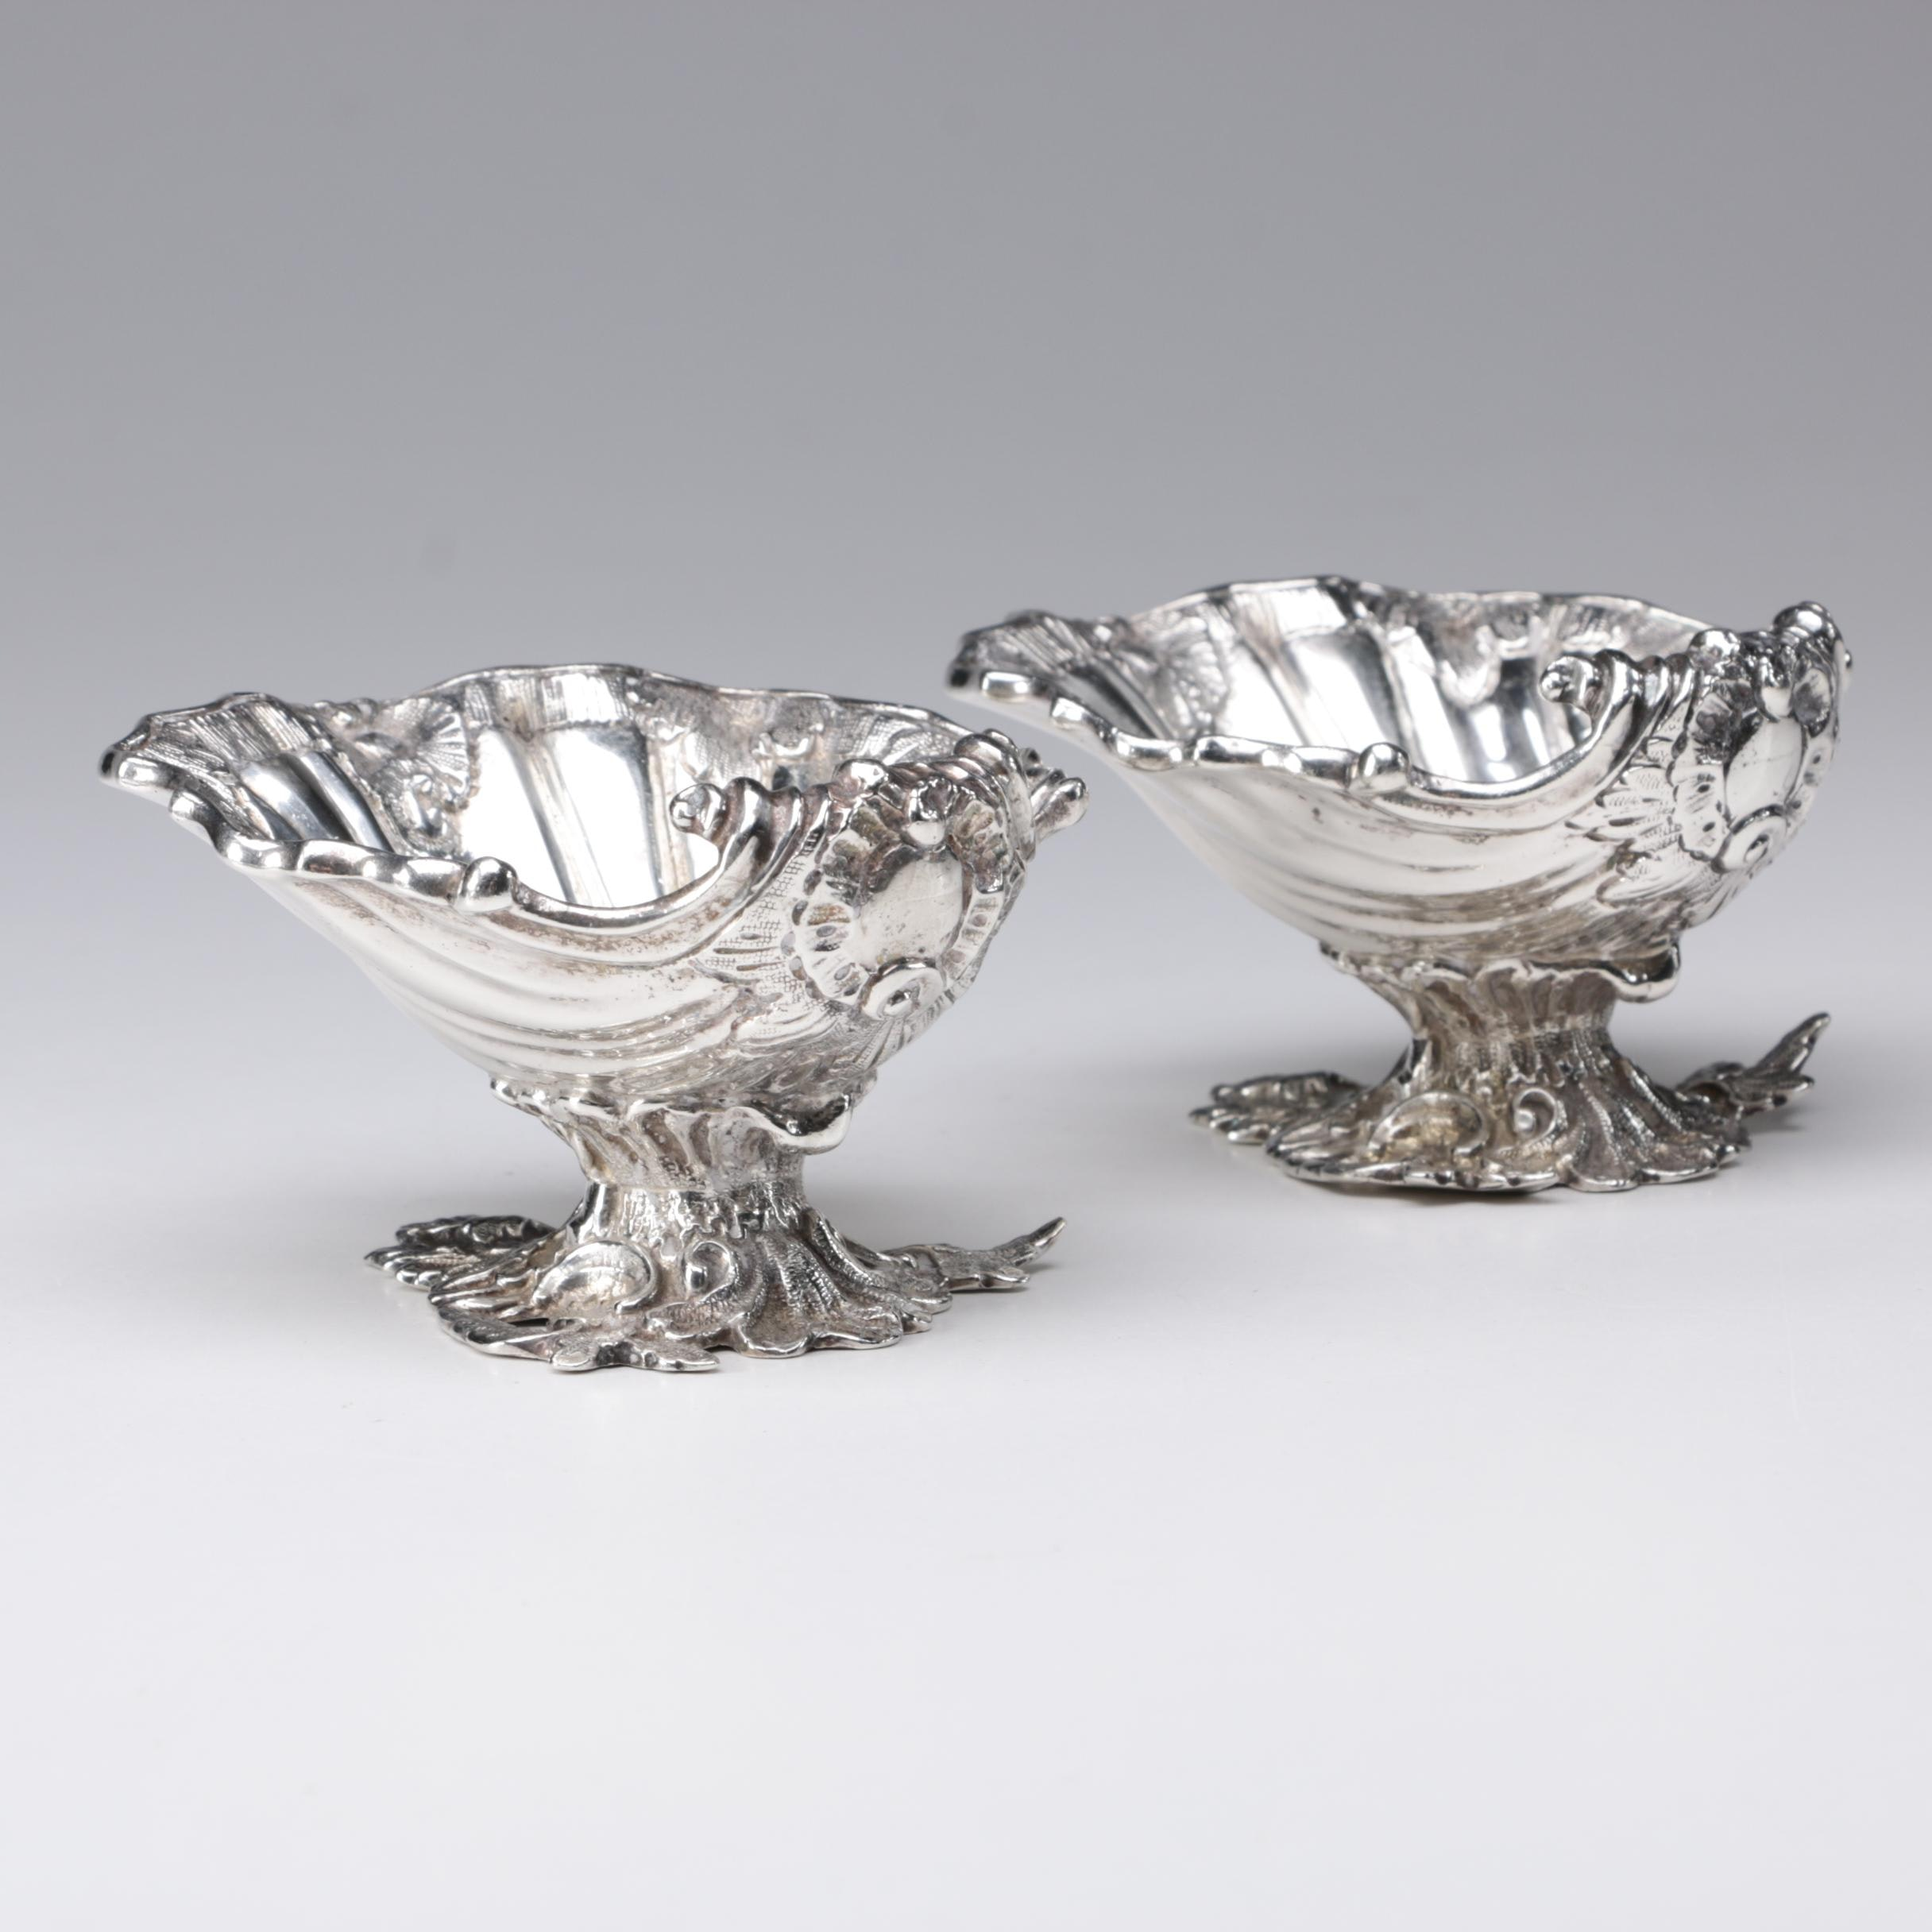 George Nathan & Ridley Hayes Chester Sterling Silver Shell Salts, 1904